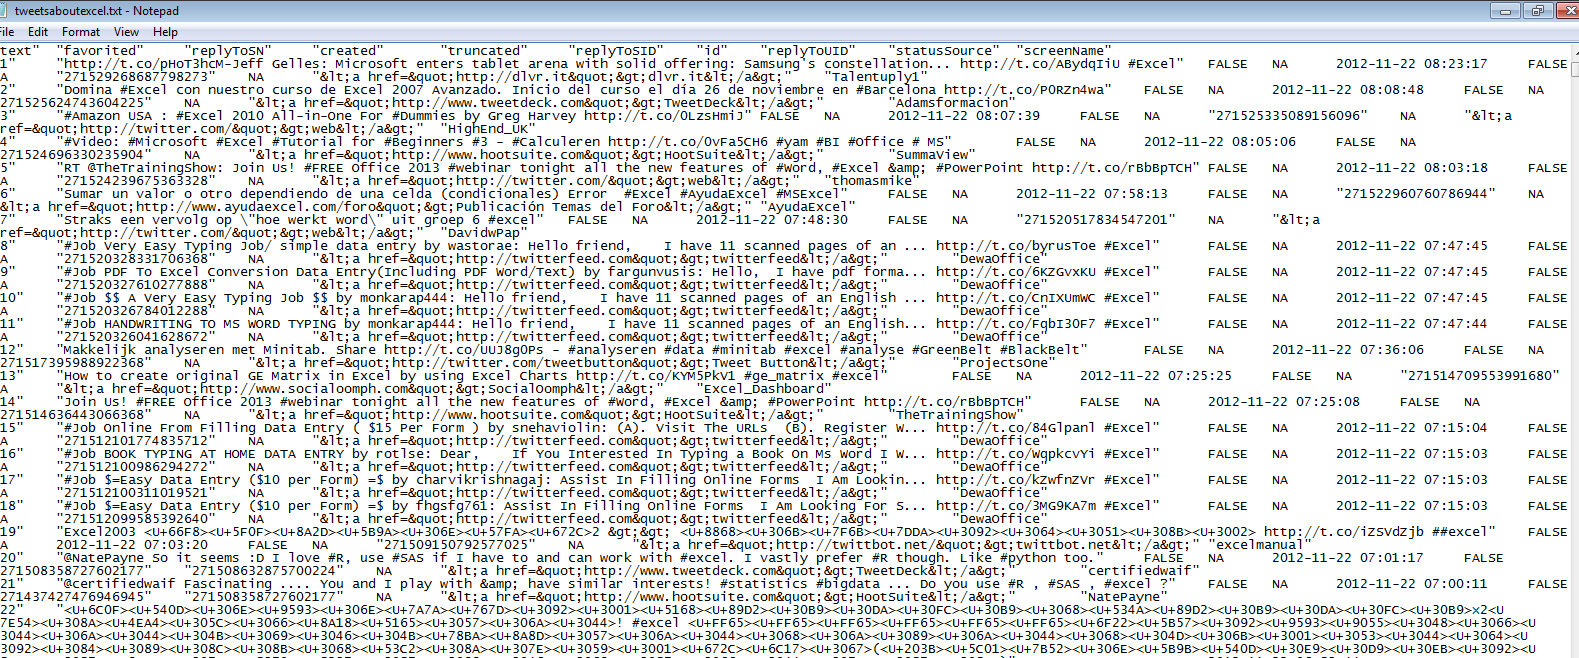 1500-tweets-r-excel-tab-delimited-rstudio-code Tab Delimited Format Example on spreadsheet format, microsoft excel format, xml format, text format, pdf format, windows help format, portable document format, rtf format, data interchange format, csv format, endnote format, ascii format, word format,